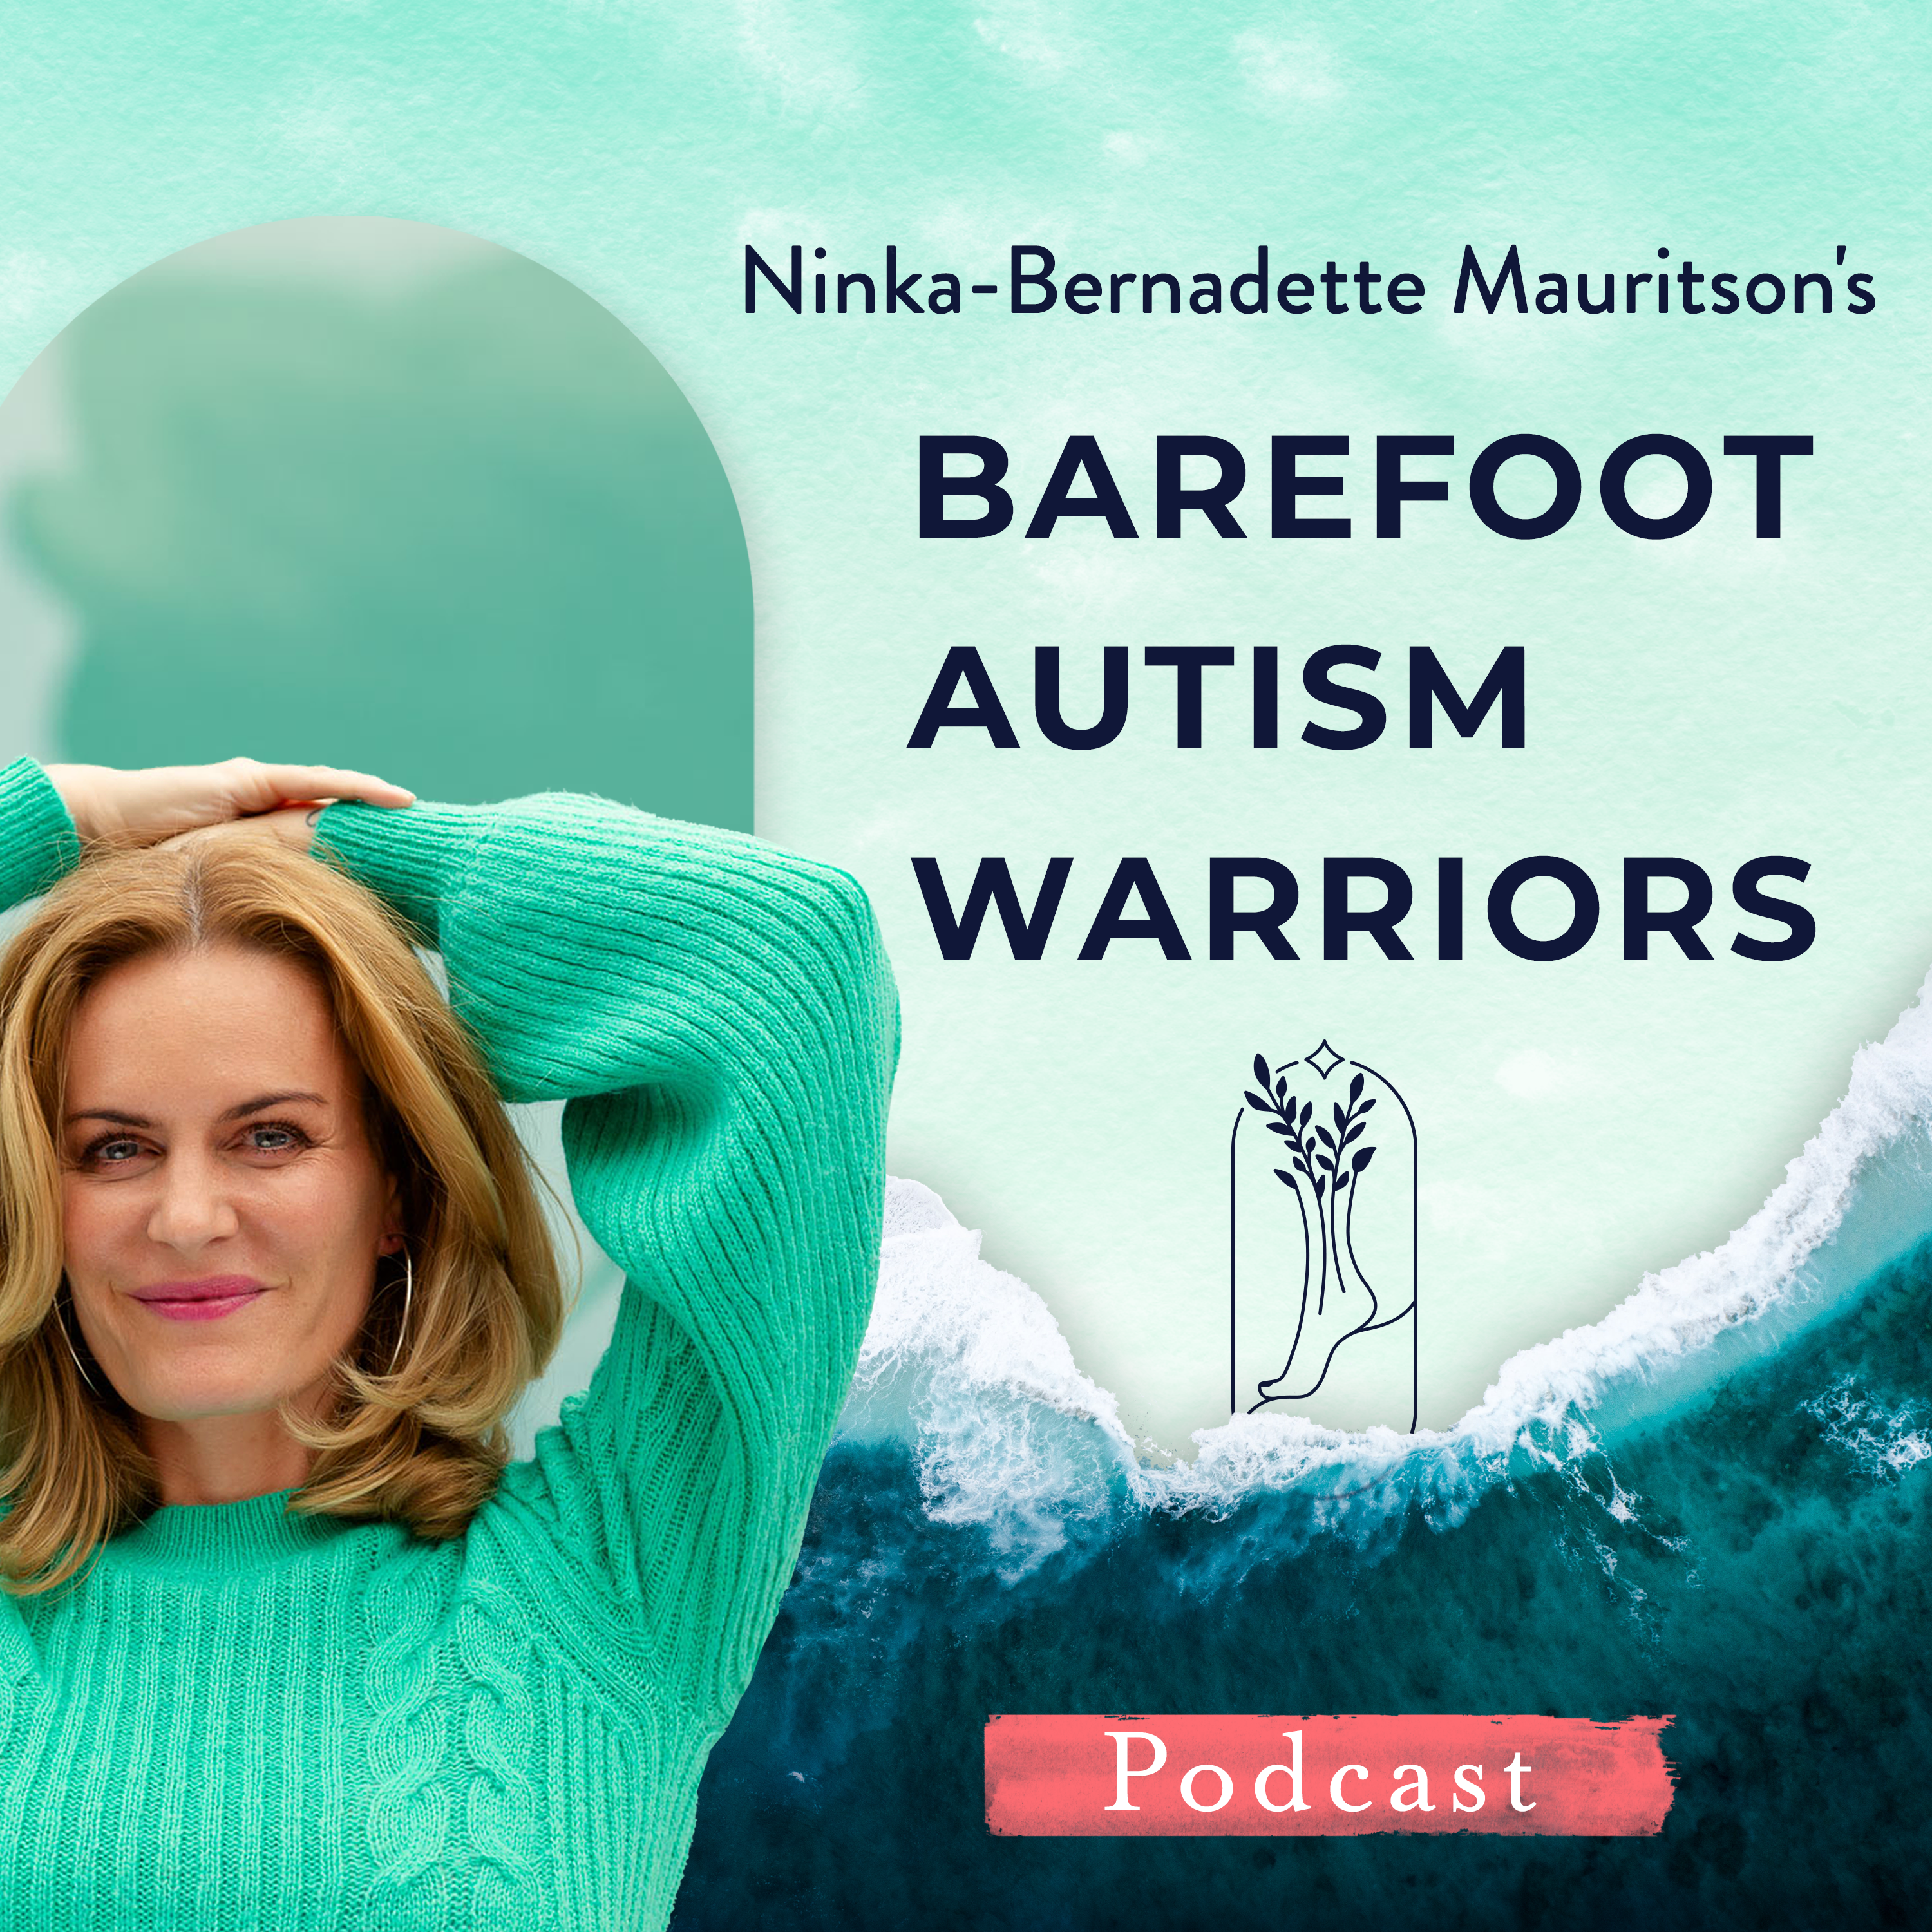 Can you create a barefoot autism healing revolution with your genius design?